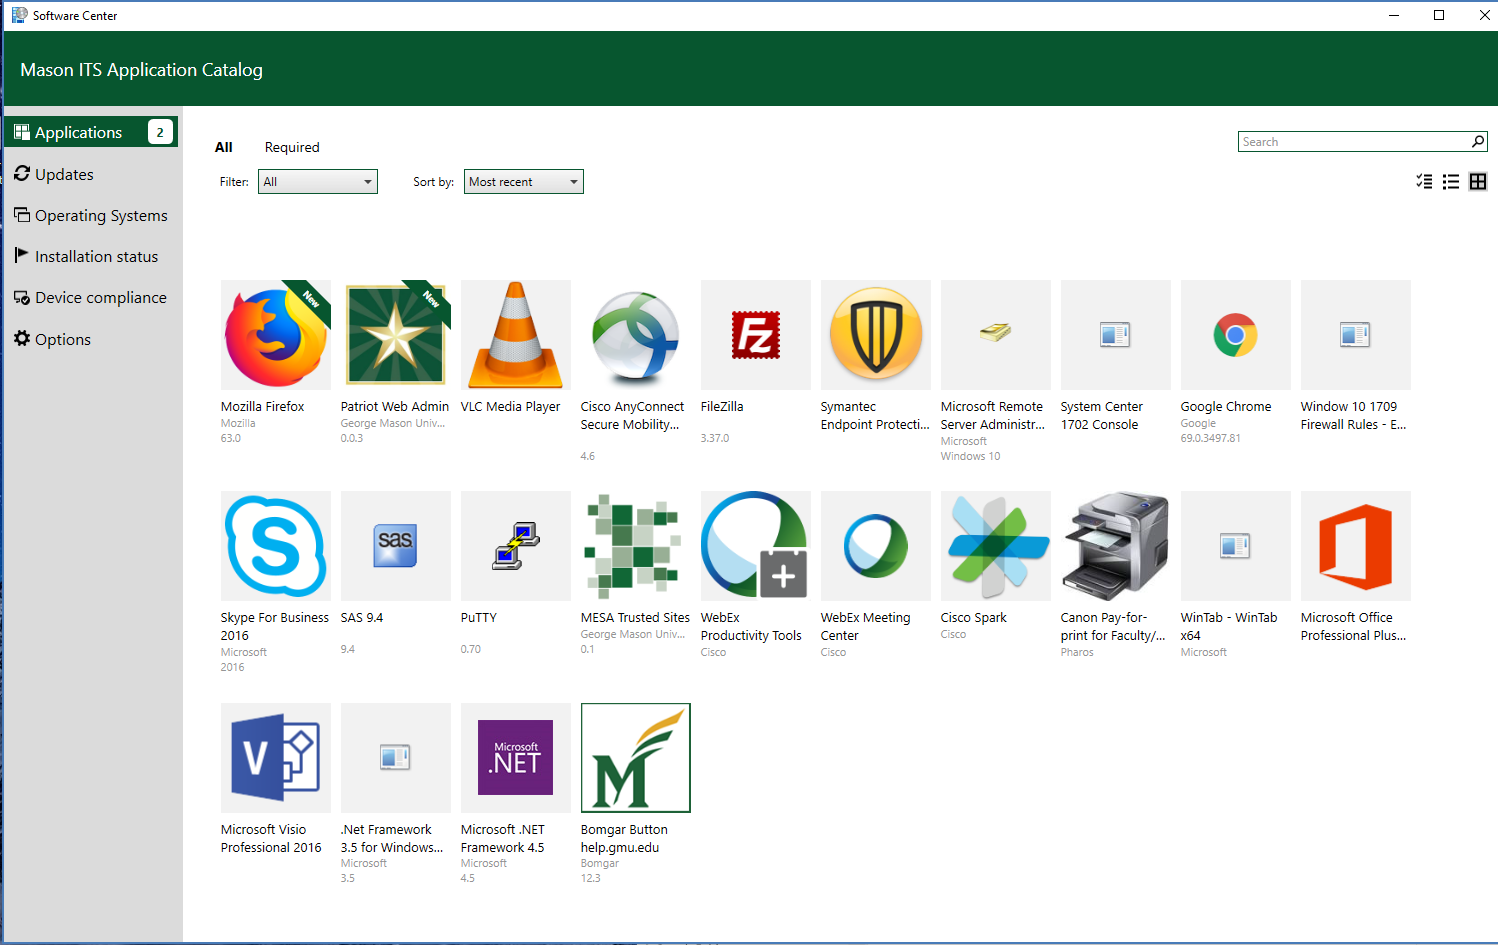 Software Center Interface